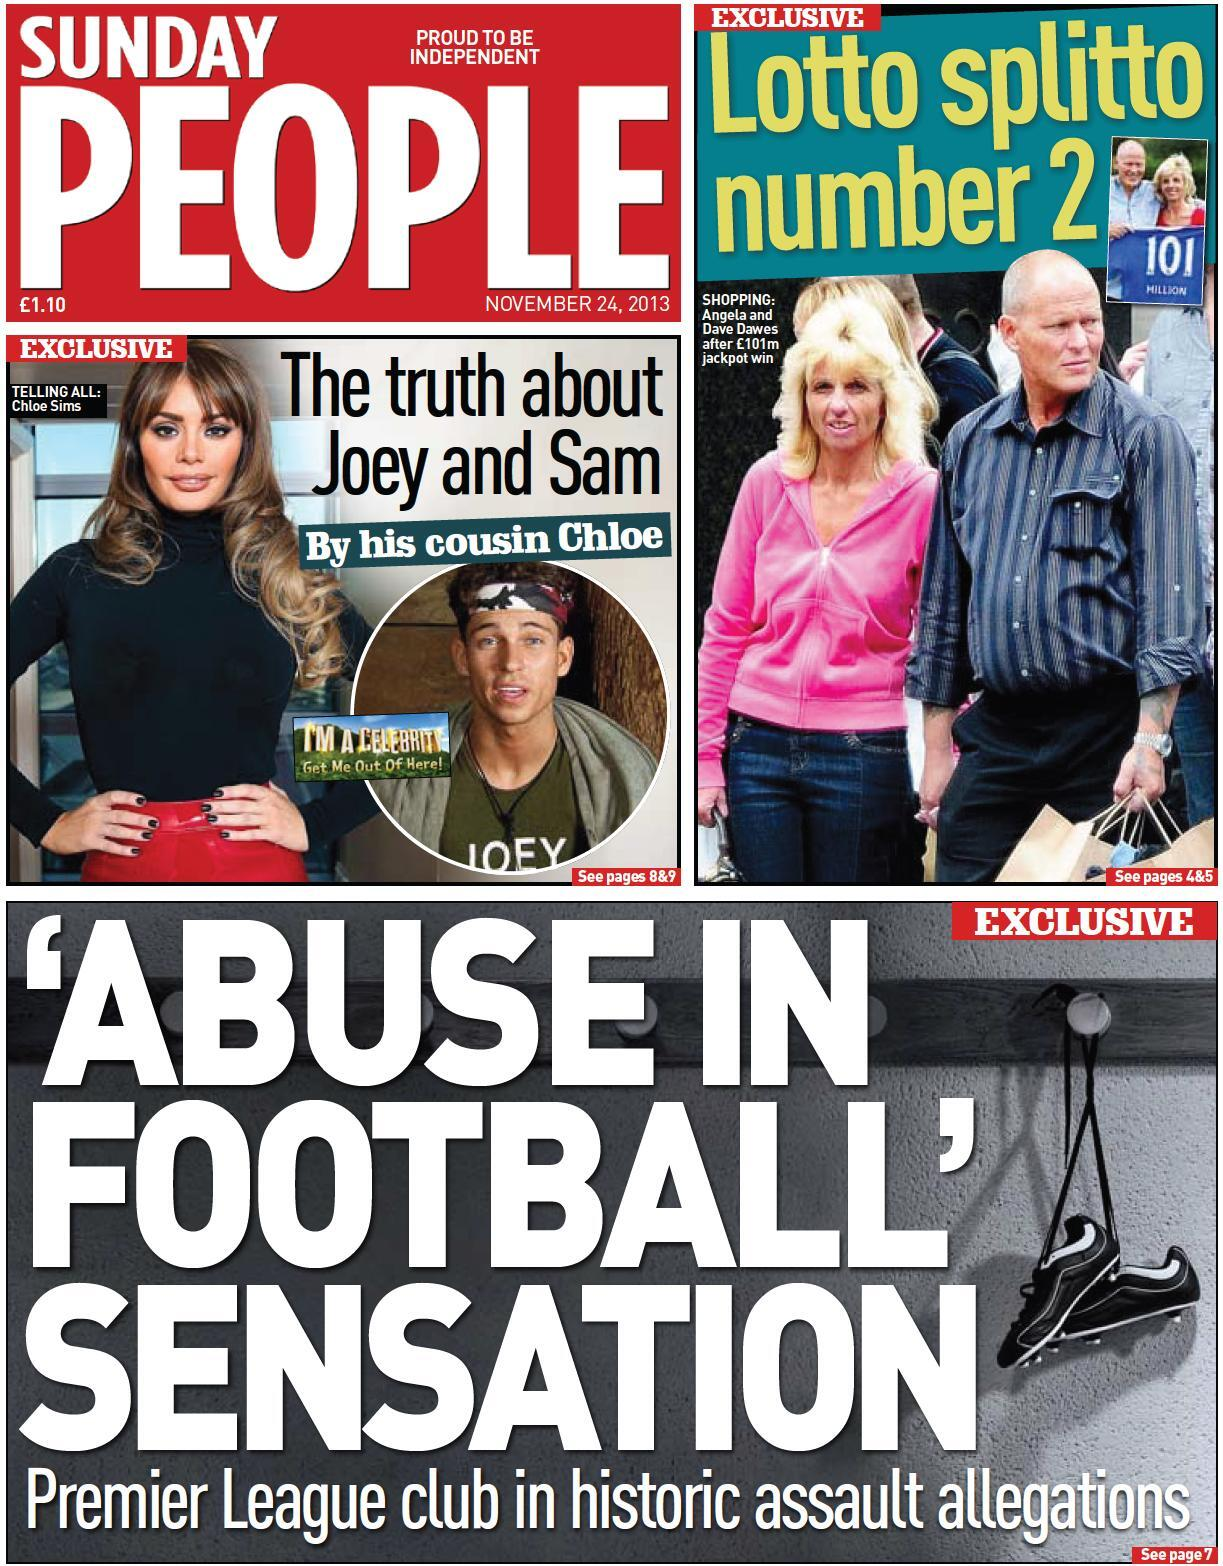 Sunday People front page: Abuse in football   Premier League club in historic allegations [Exclusive]